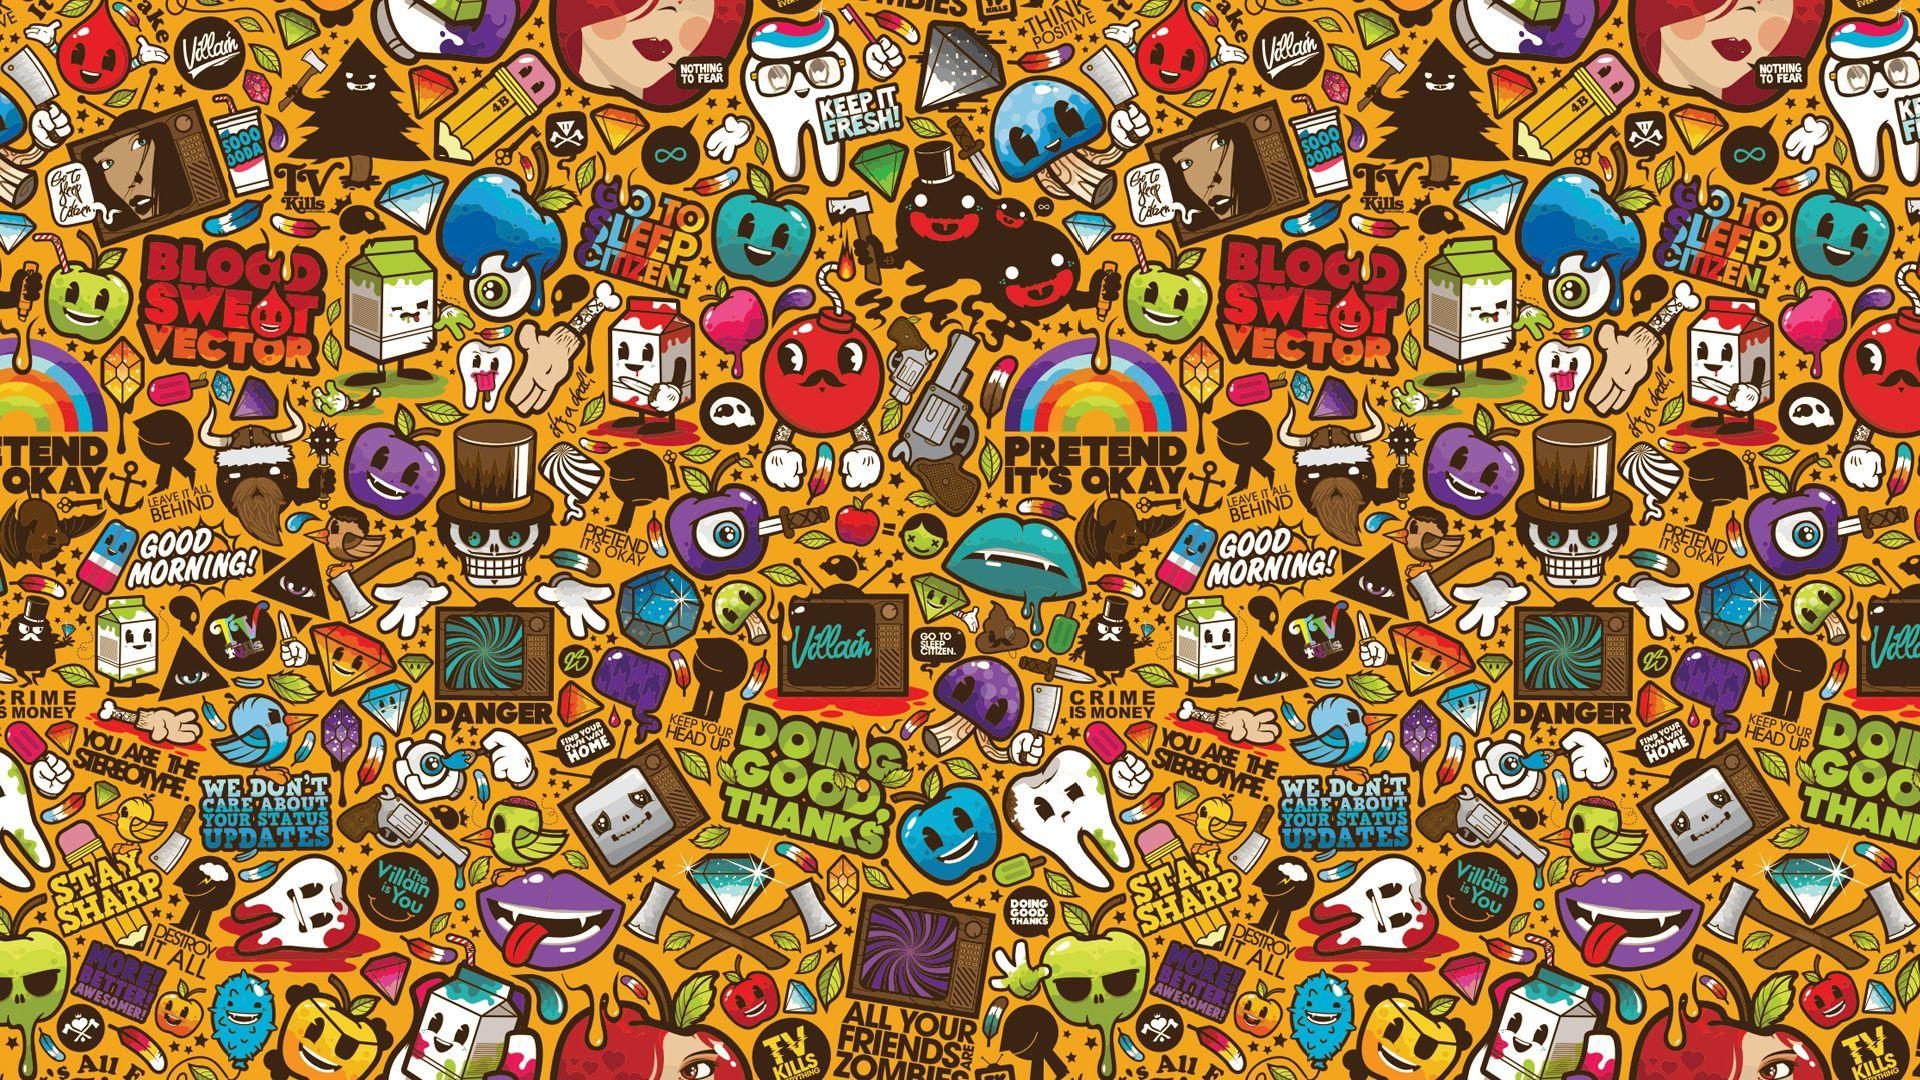 Sticker bomb full hd wallpaper and background image 1920x1080 id